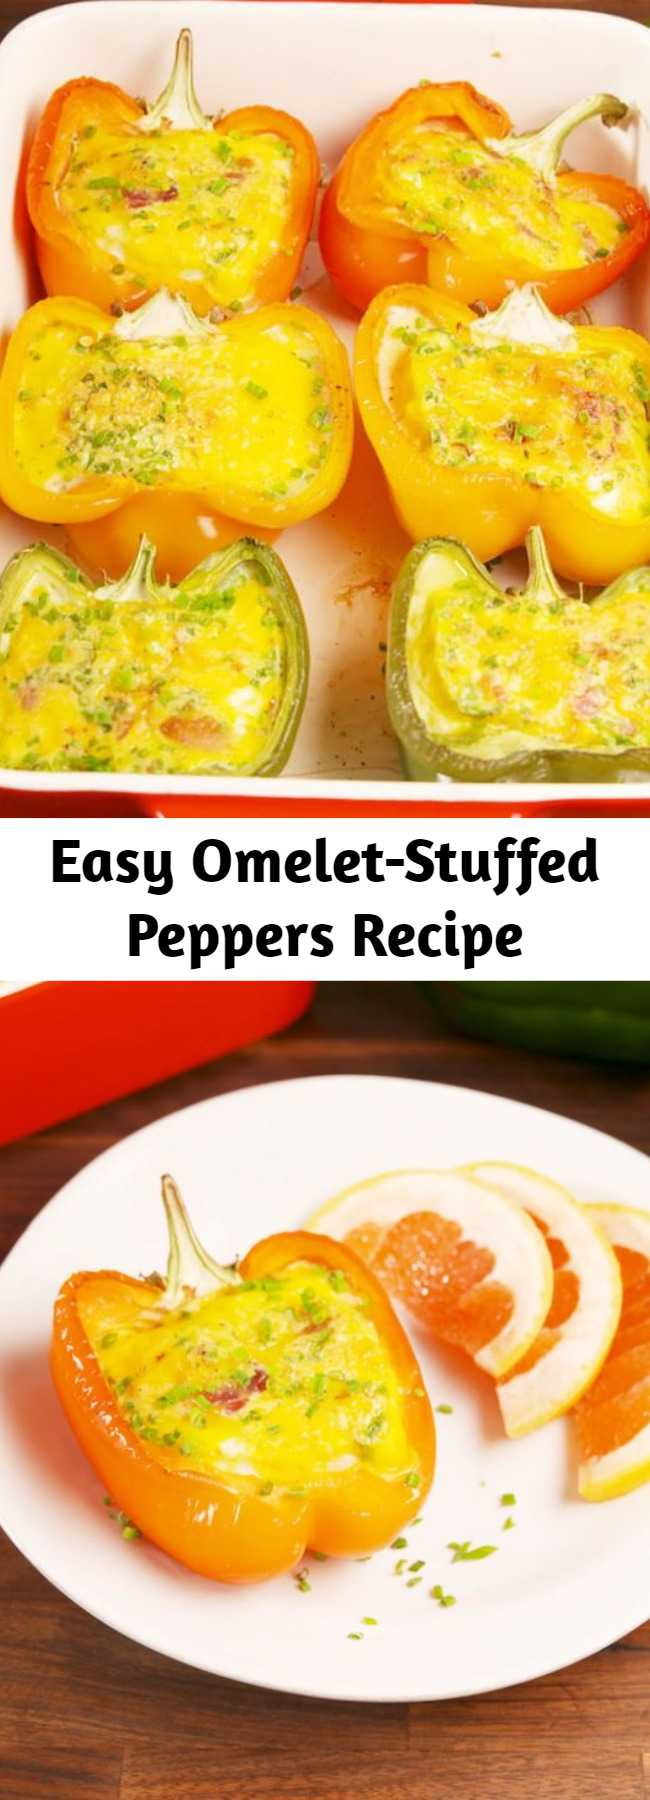 Easy Omelet-Stuffed Peppers Recipe - Omelet stuffed peppers are the keto breakfast you've been dreaming of. #easy #recipes #omelet #lowcarb #keto #ketorecipes #breakfast #brunch #eggs #bellpepper #stuffedpeppers